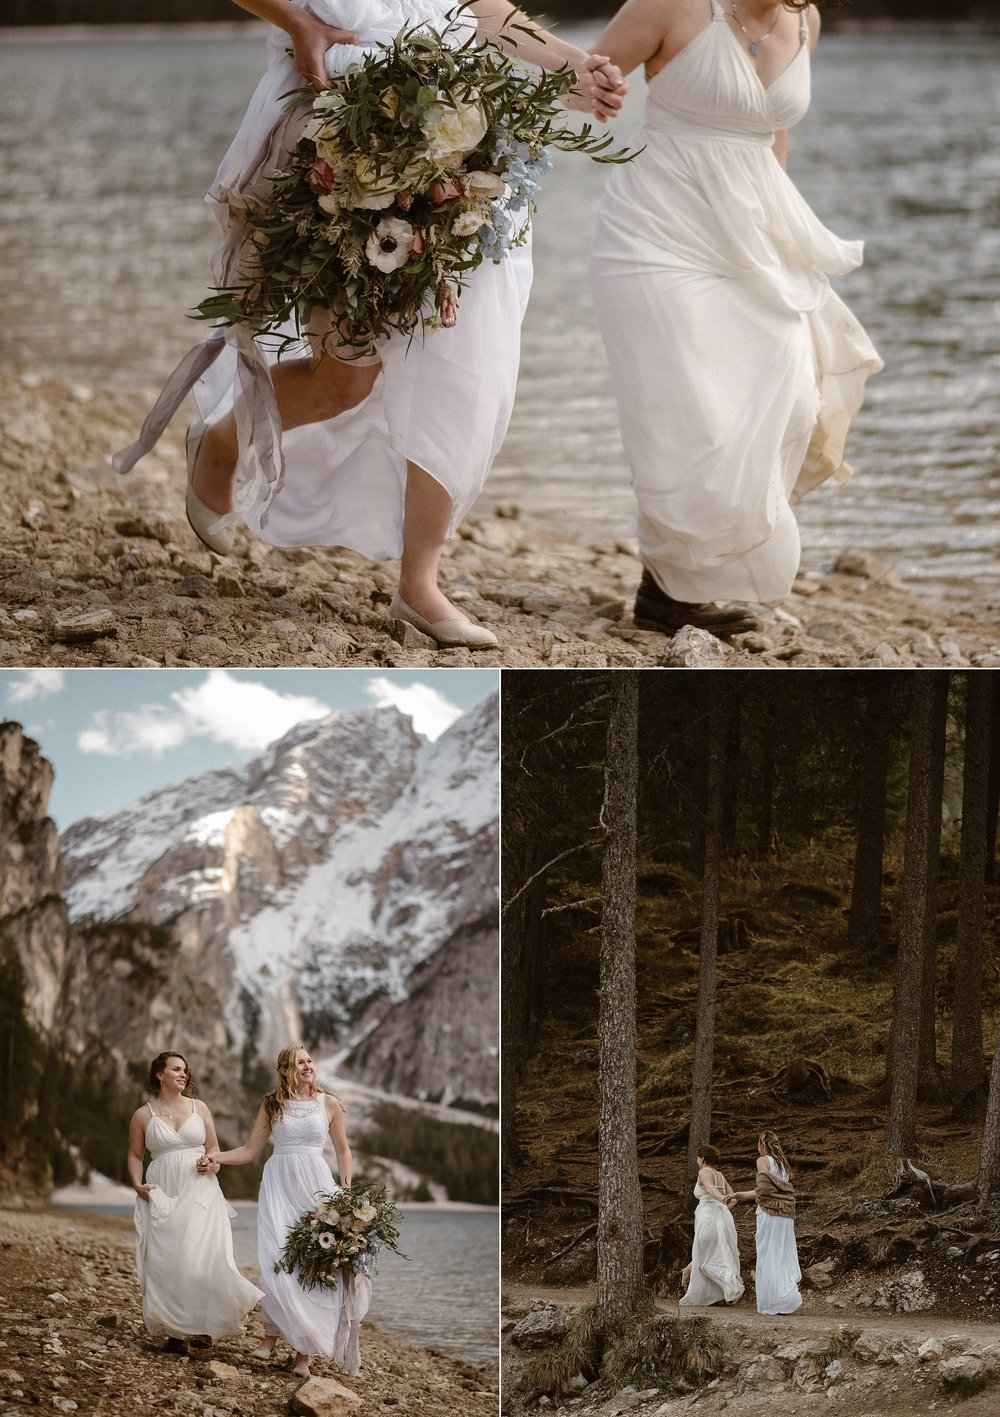 Running off into the forest, starting off their wedded life as they had always dreamed - with an adventure through Northern Italy, no one around but their intimate wedding photographer Maddie Mae to capture each step of their incredible day.